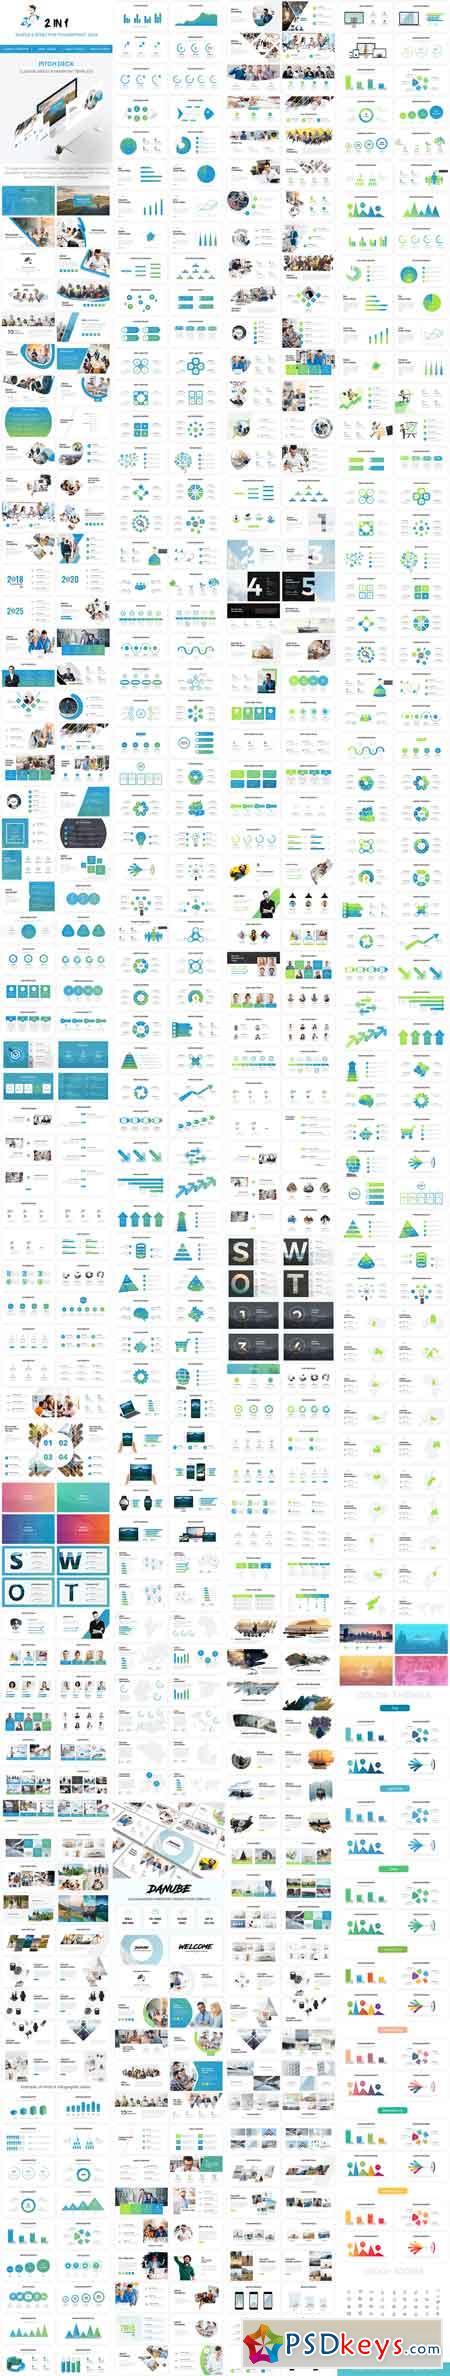 Bundle 2 in 1 Simple & Effective Pitch Deck Powerpoint Template 2019 22875671